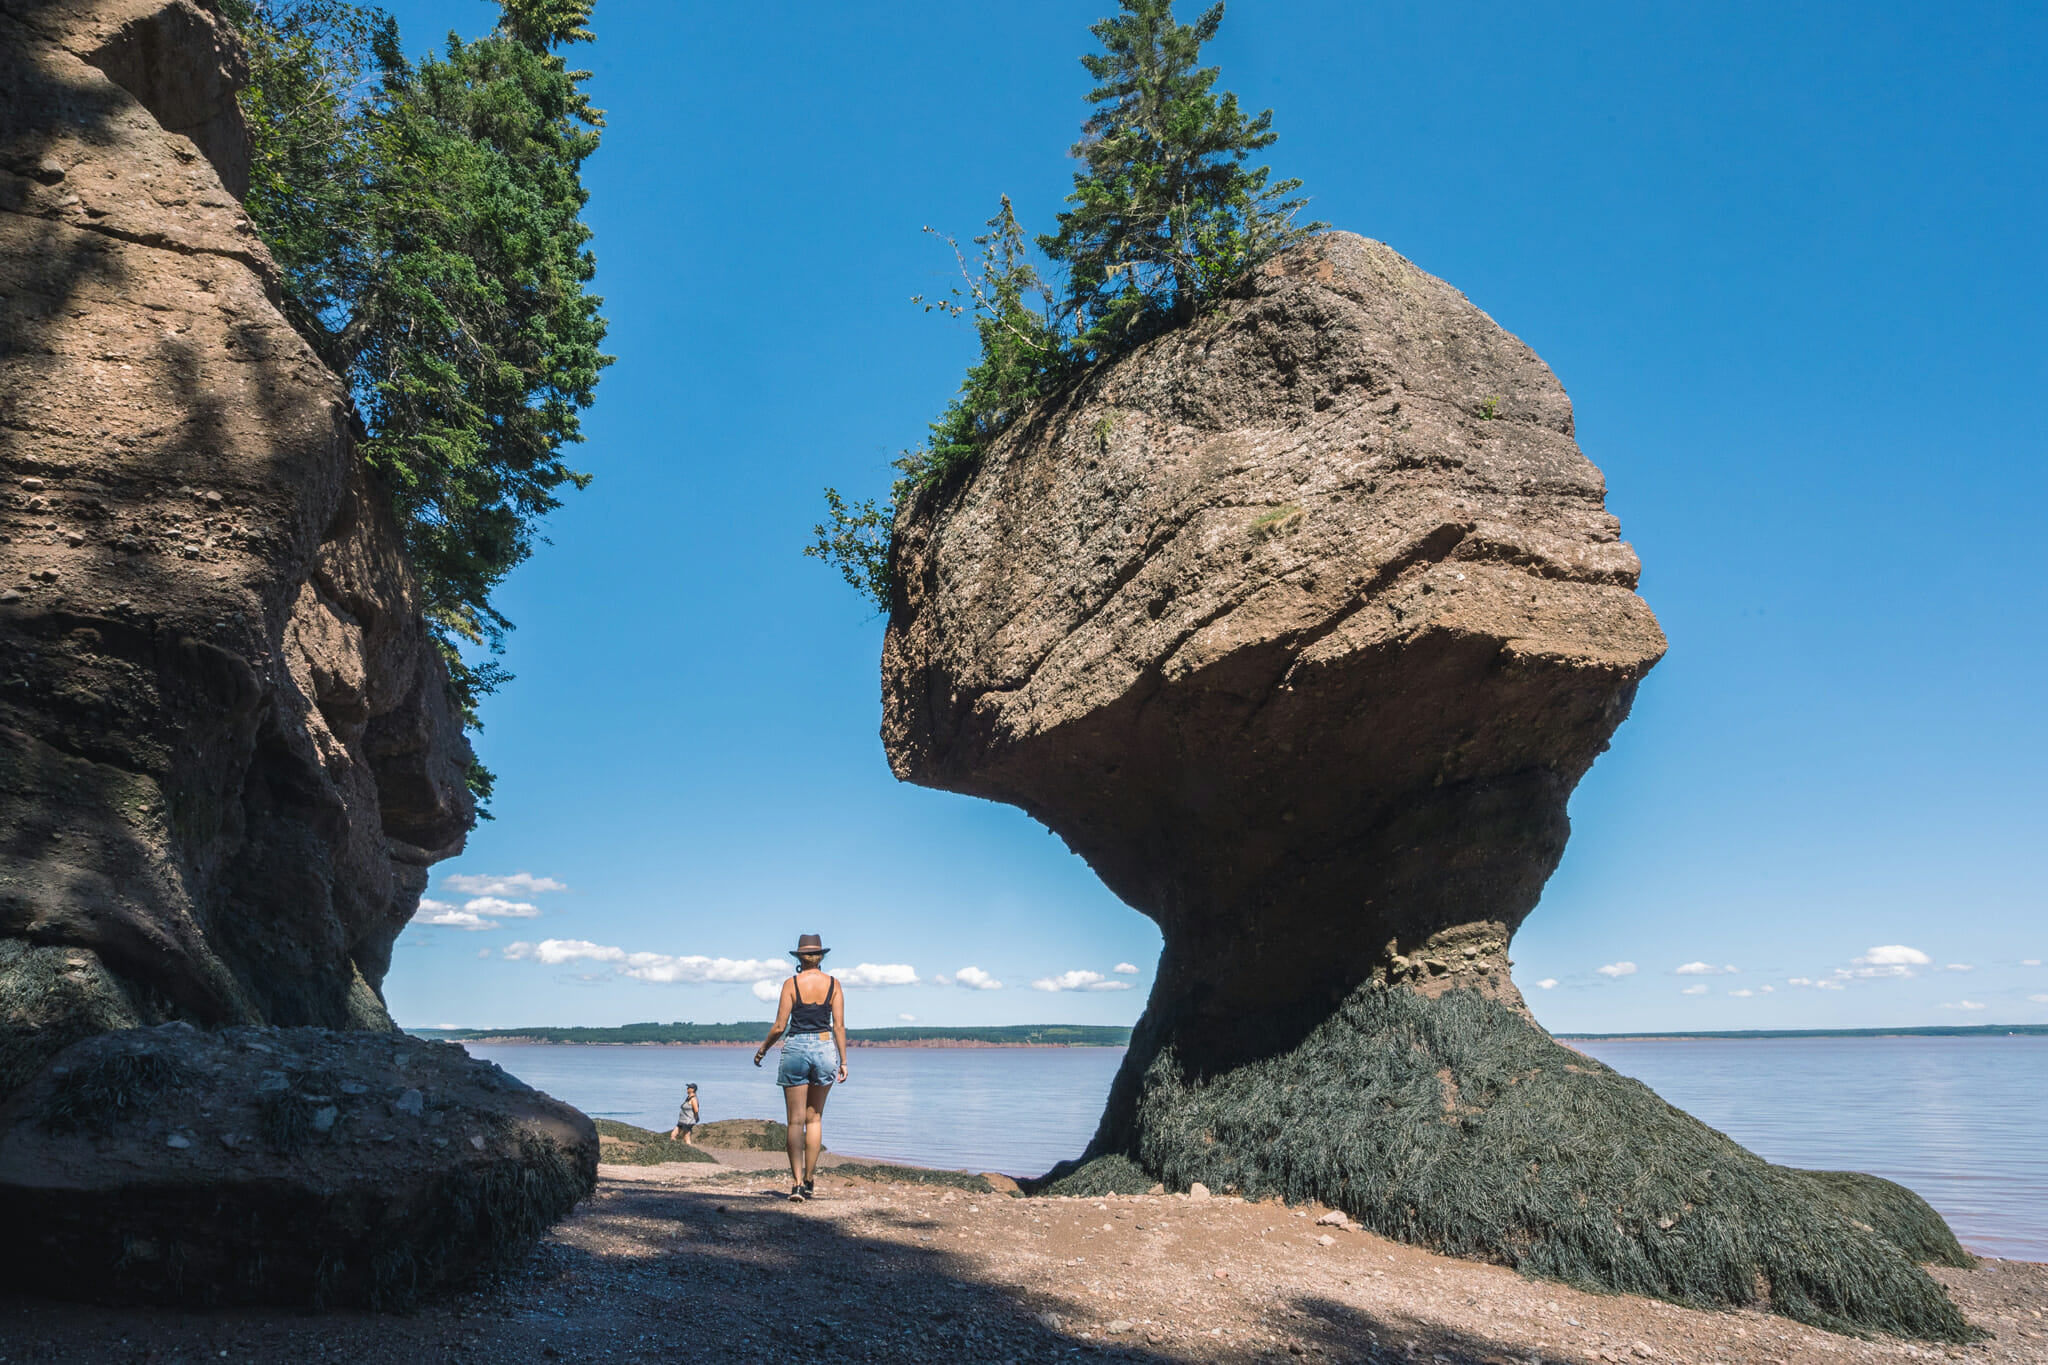 hopewell-rocks-canada-voyage-que faire